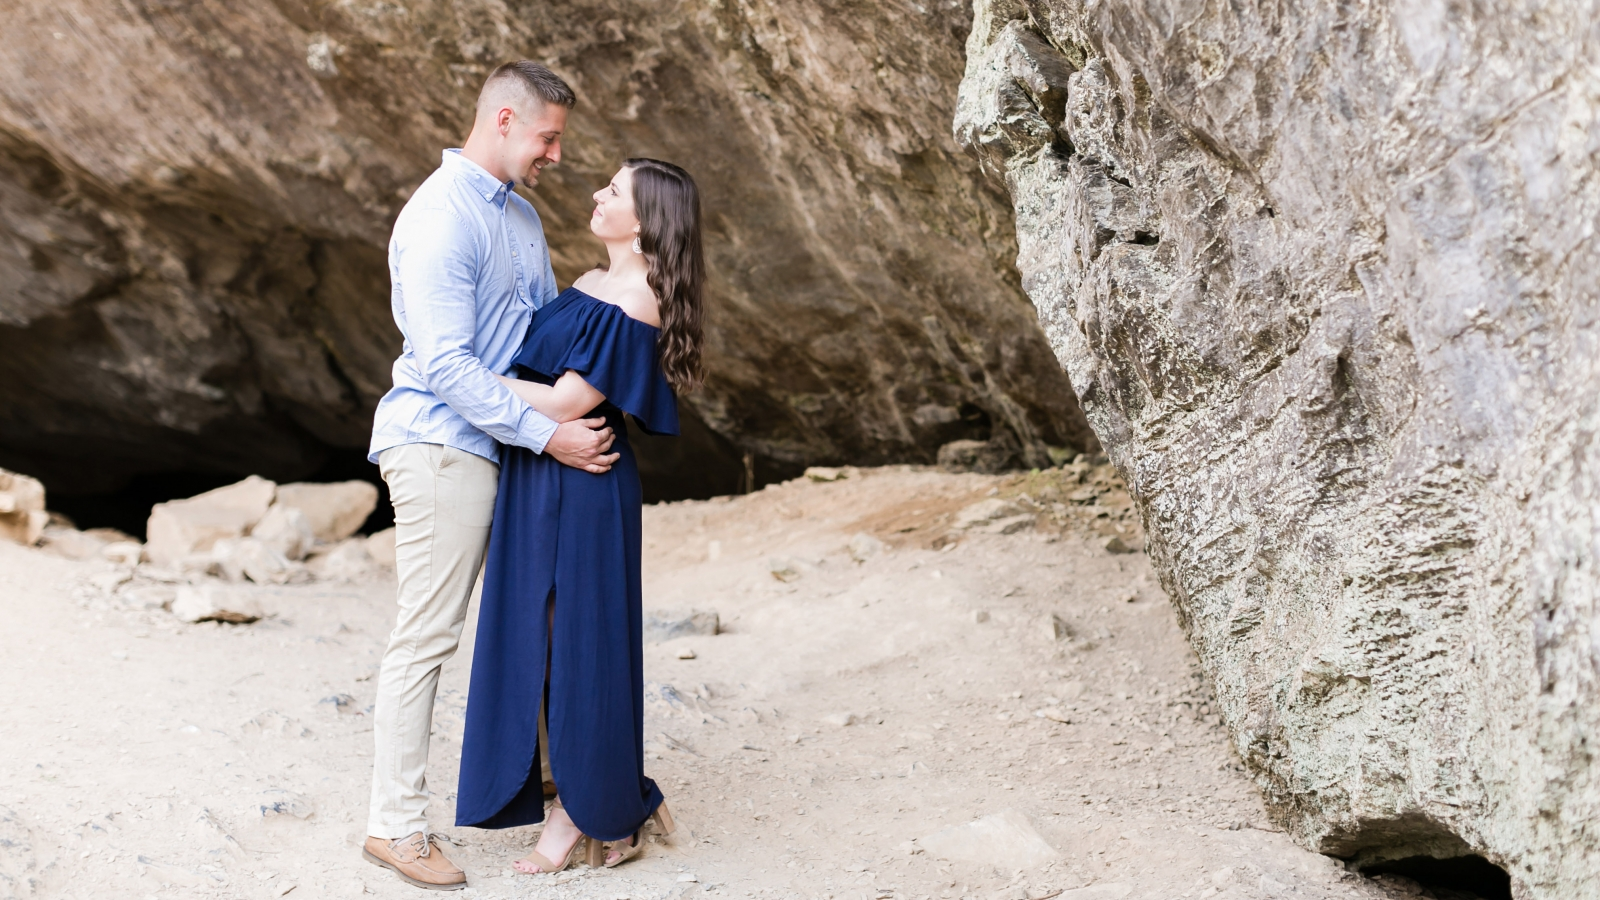 natural_bridge_virginia_engagement_photography_adventurous_couple